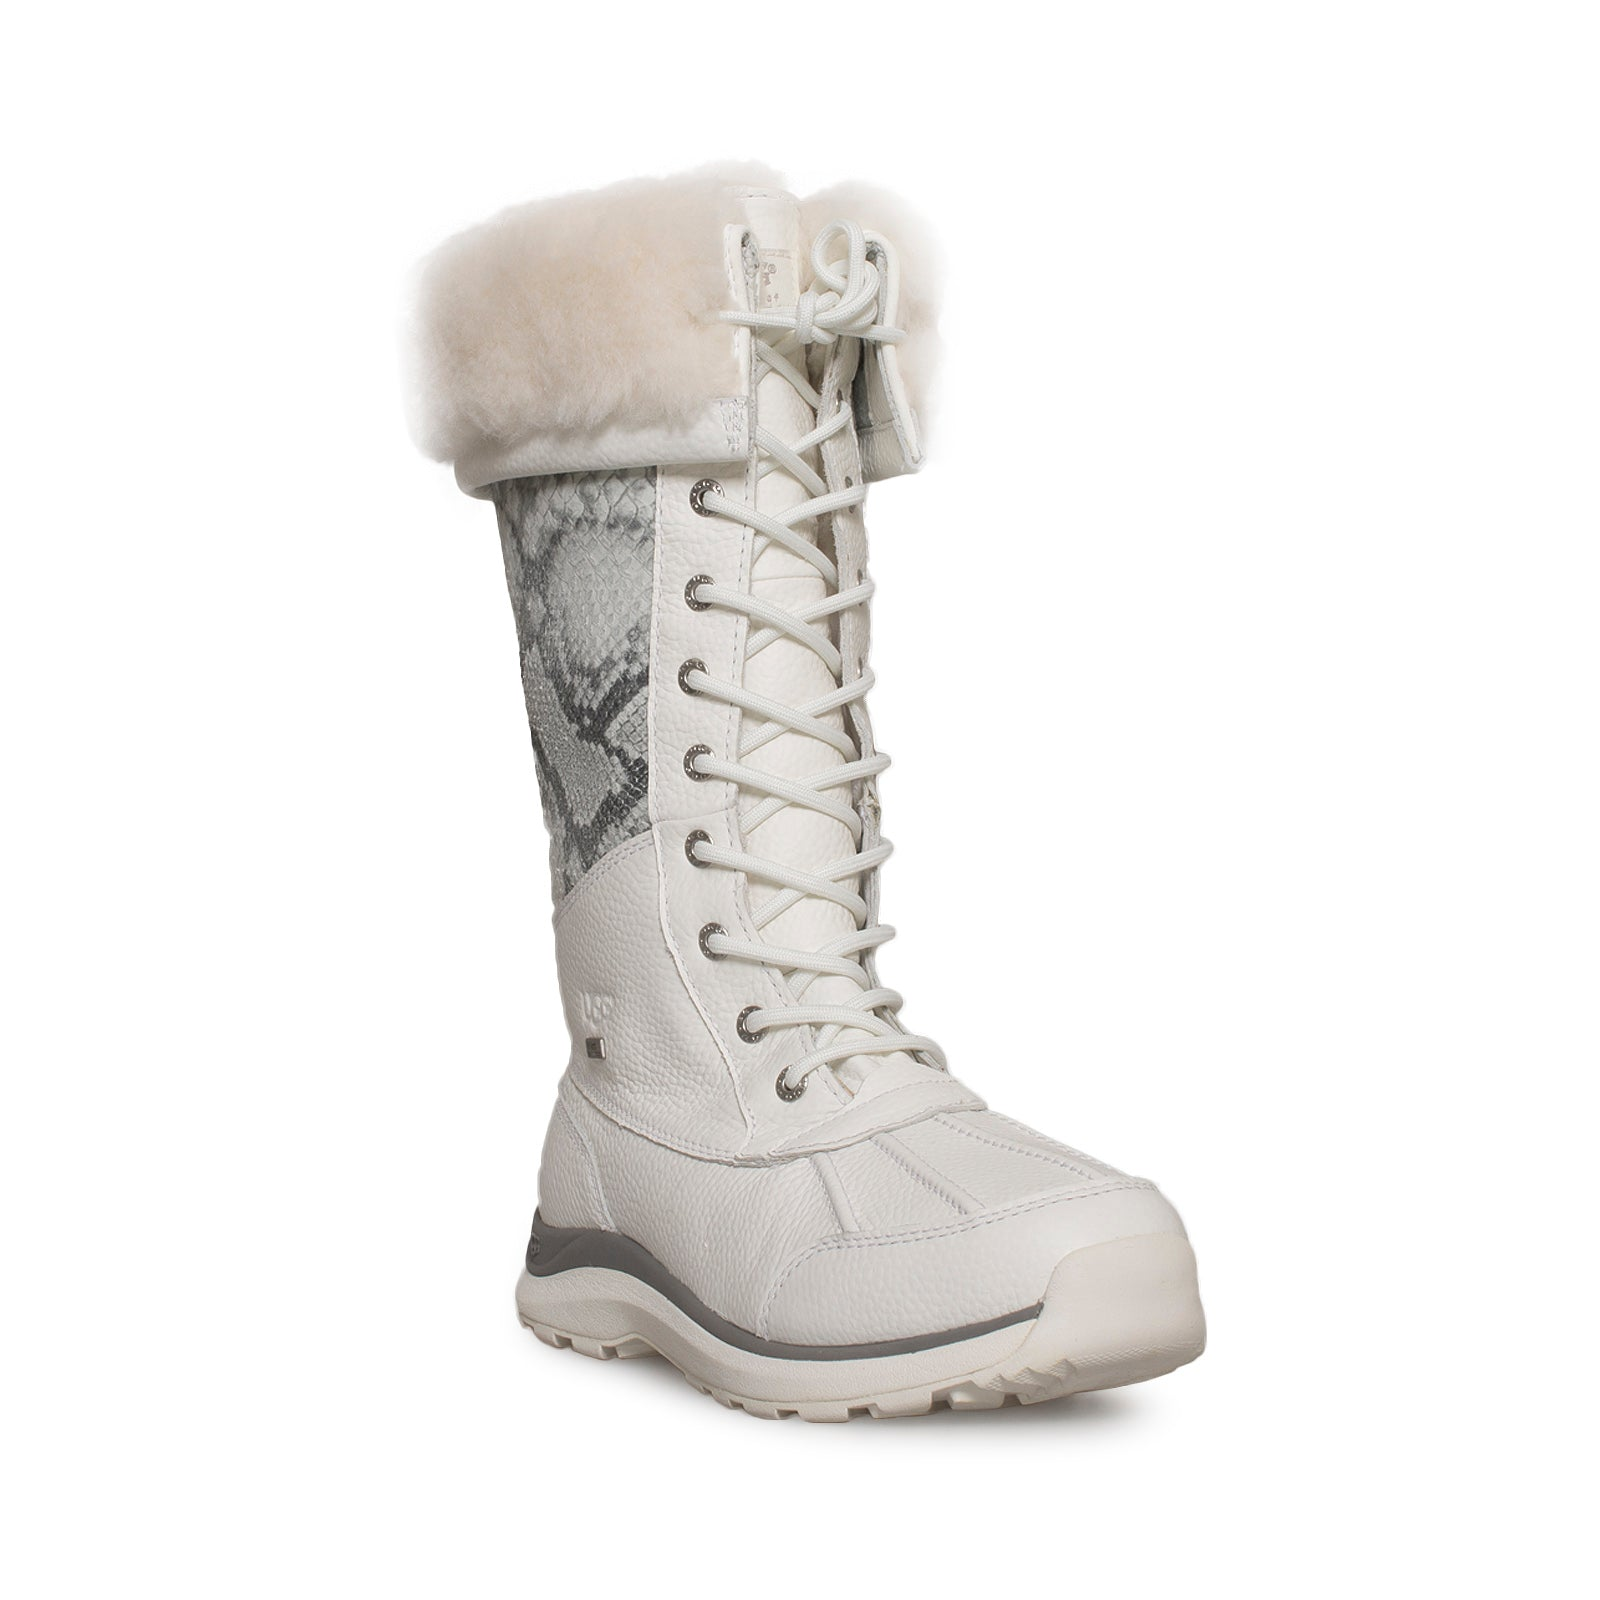 arriving boy the latest UGG Adirondack Tall III Snake White Boots